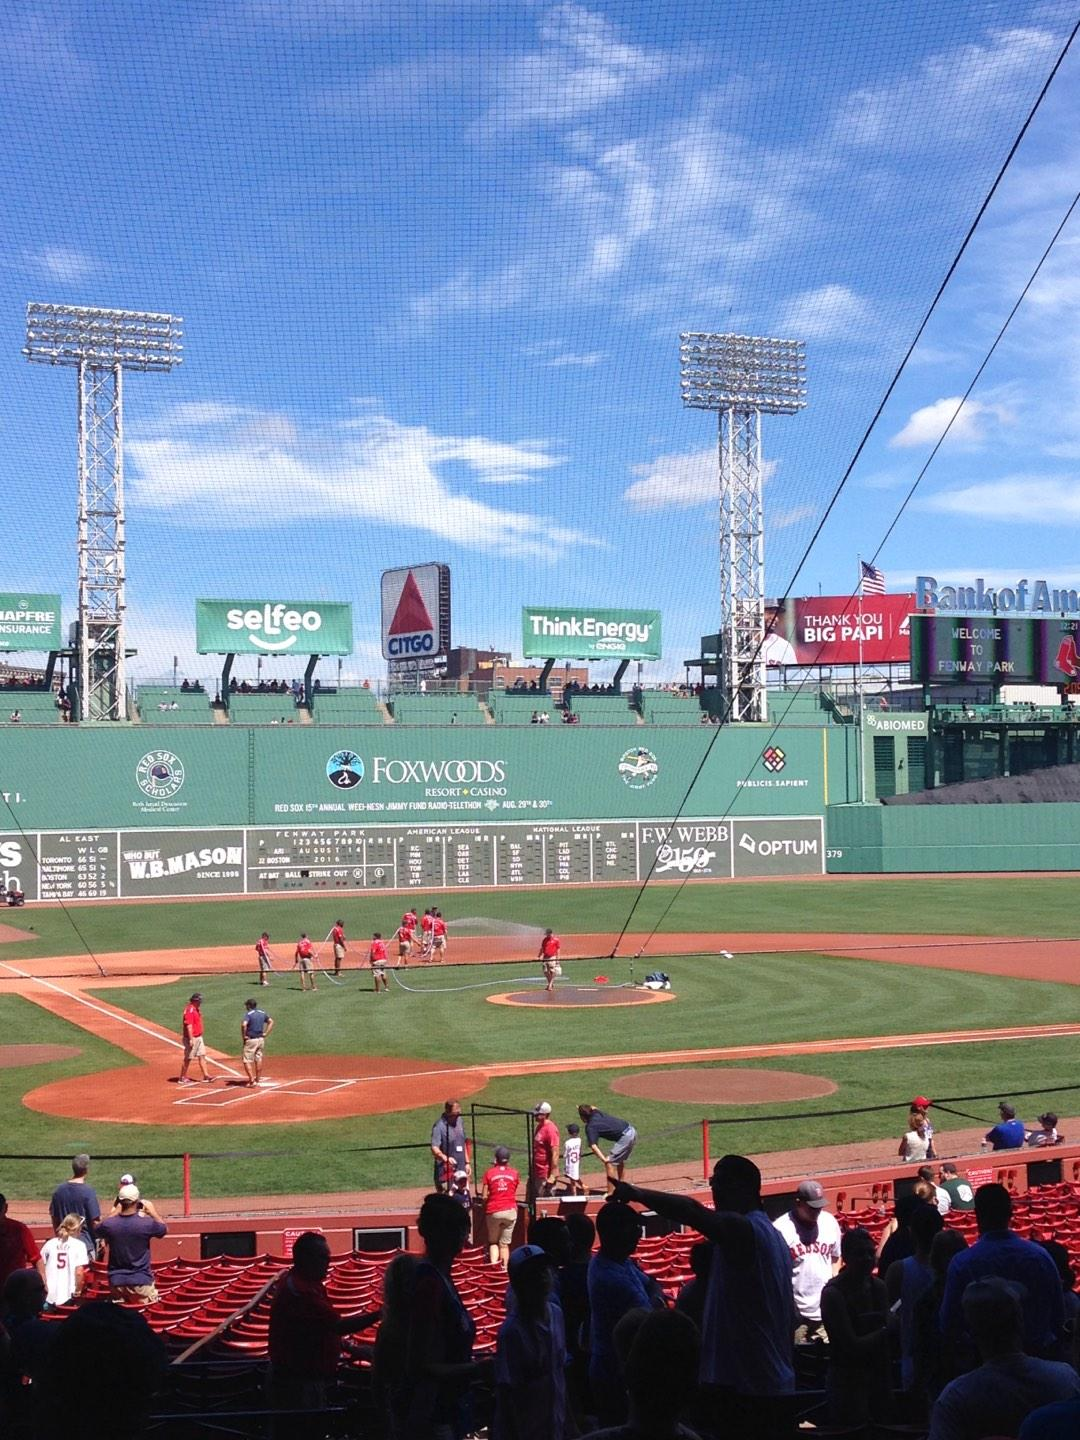 Fenway Park Section Loge Box 125 Row Y Seat 12